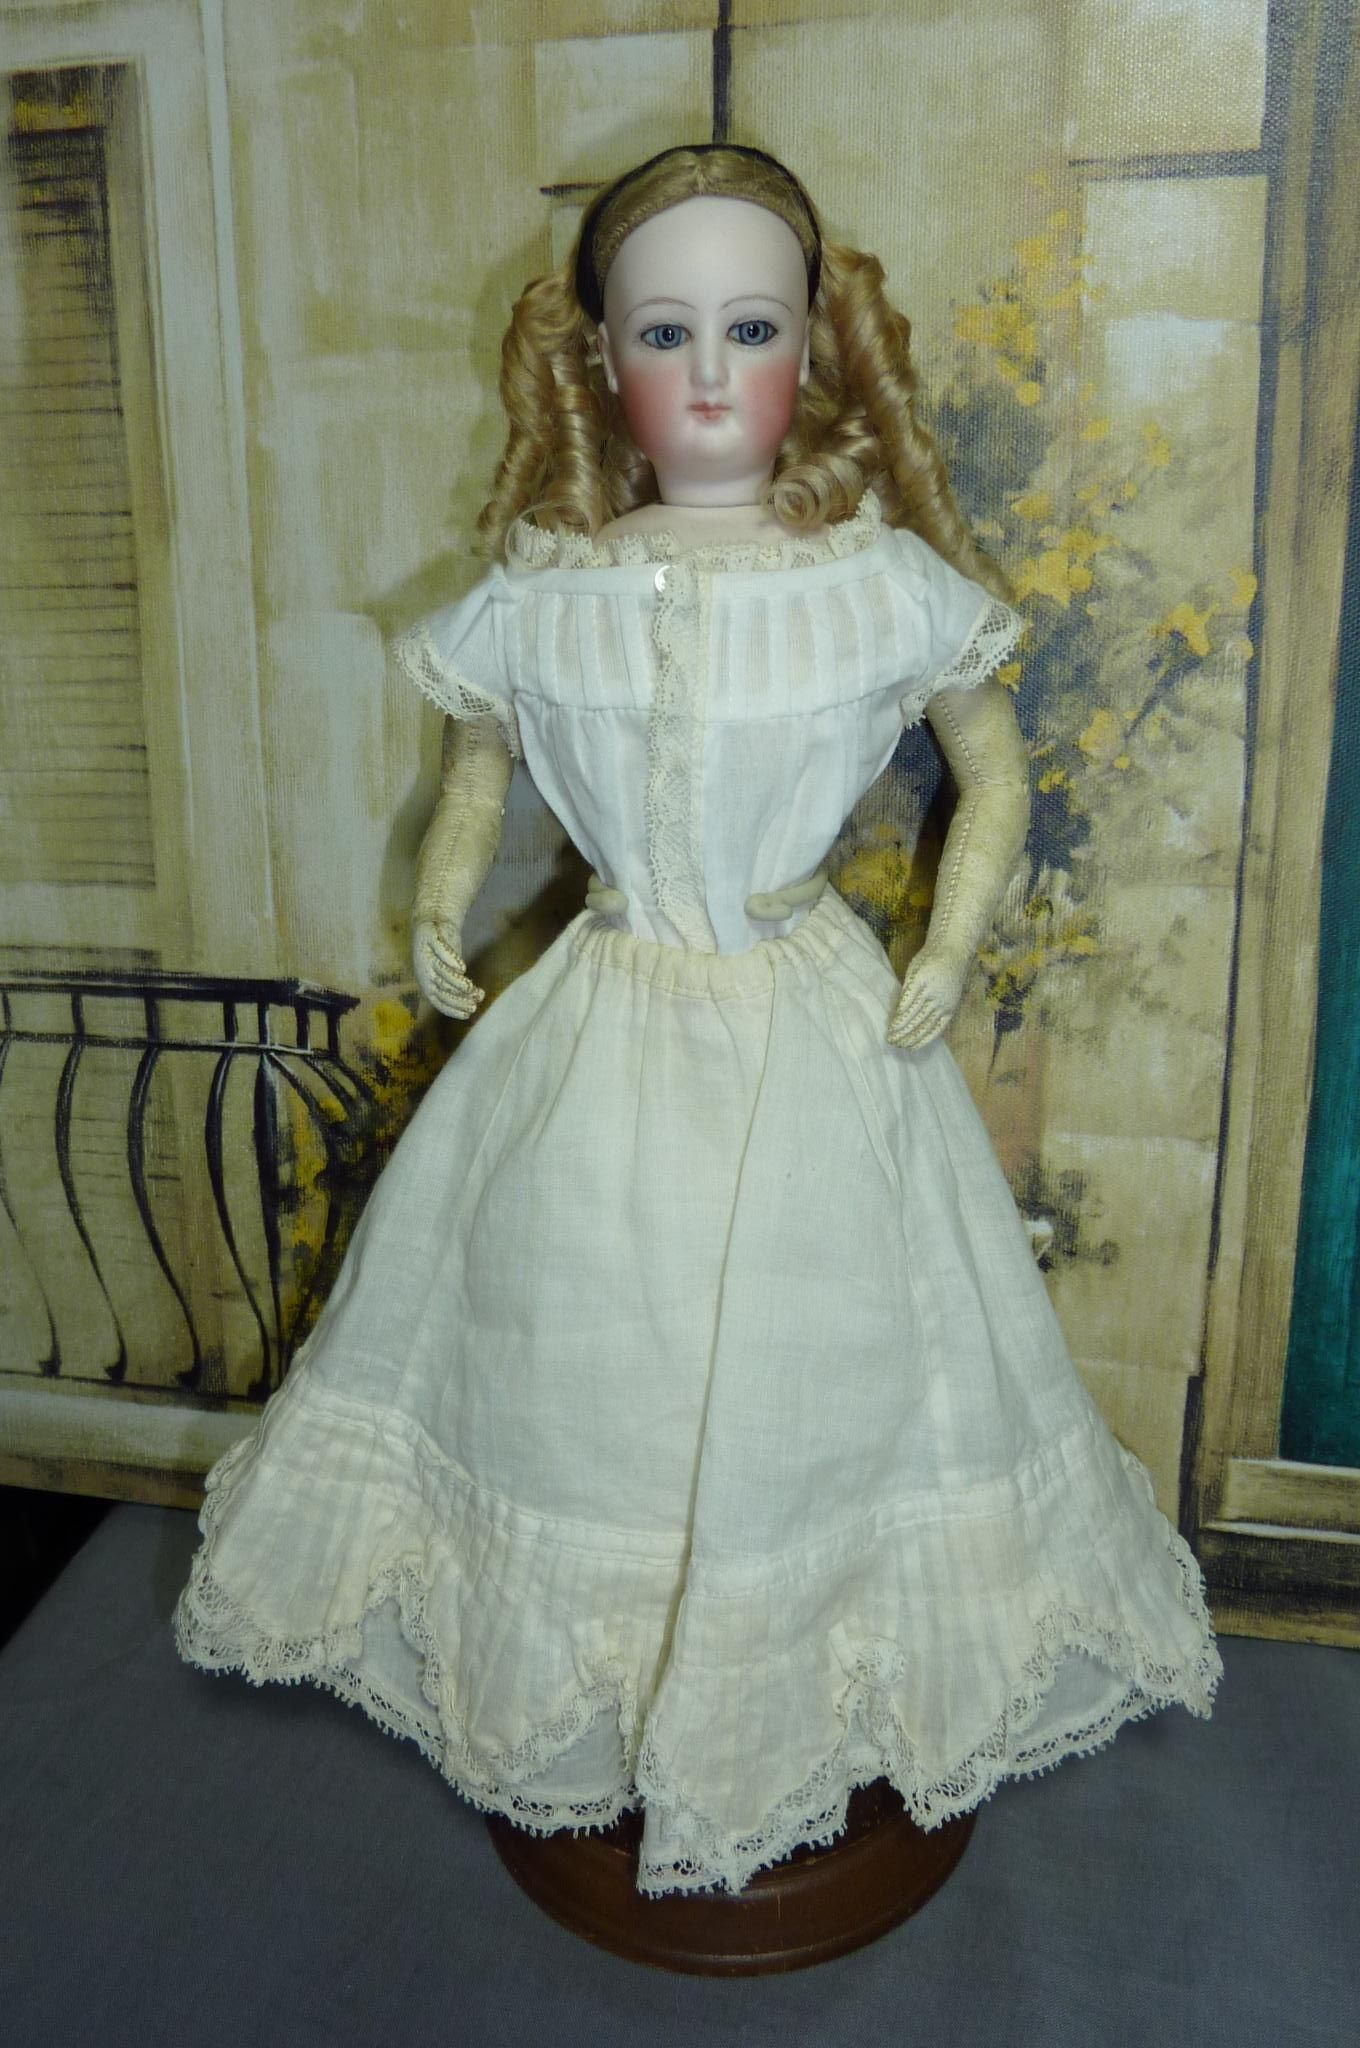 As of 1867 Henri Nicolle wrote that there were over 200 establishments in Paris where dolls and their trousseaux could be purchased.  These shops